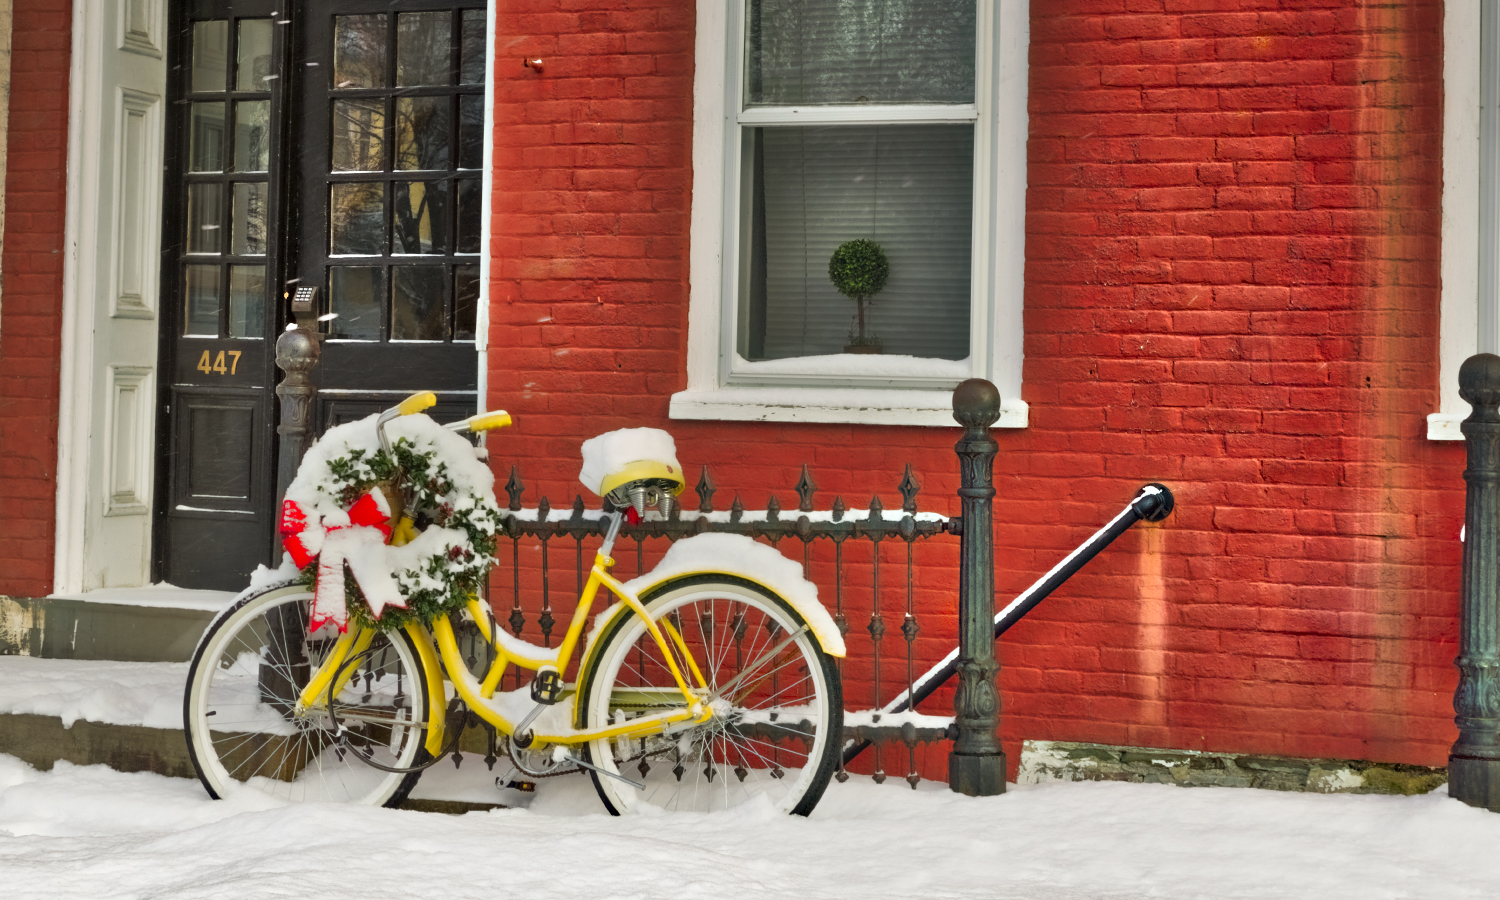 Snow covers a yellow bicycle on South Main Street.